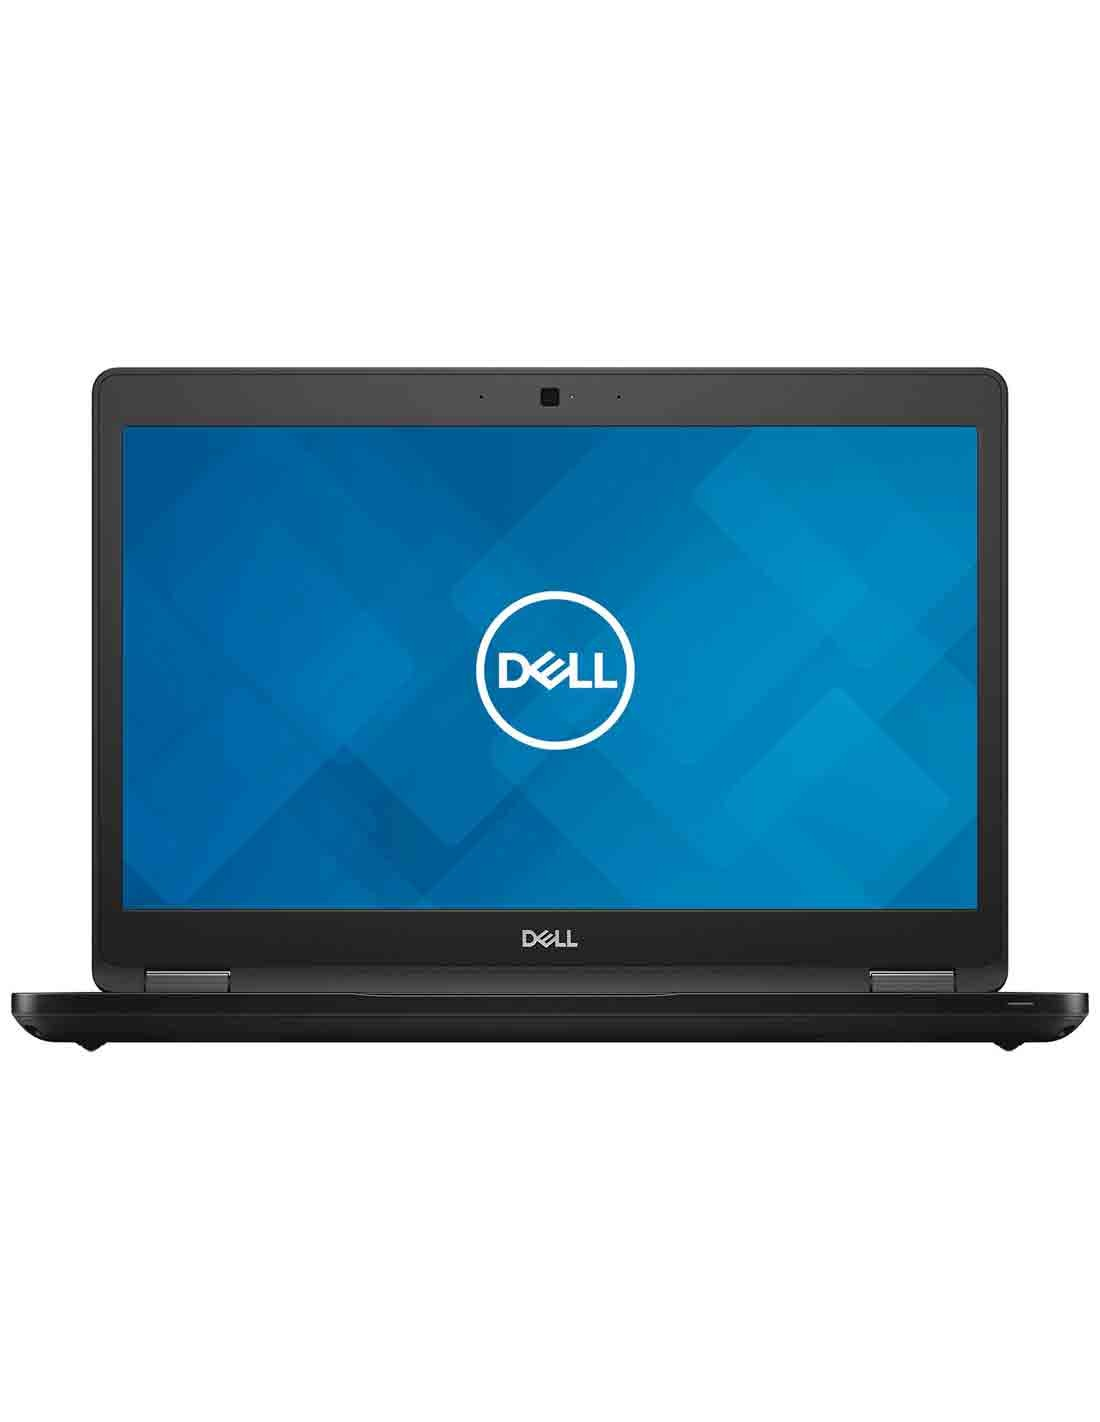 Dell Latitude 5580 Windows 10 Pro 64 i7 at the cheapest price and free delivery in Dubai online store